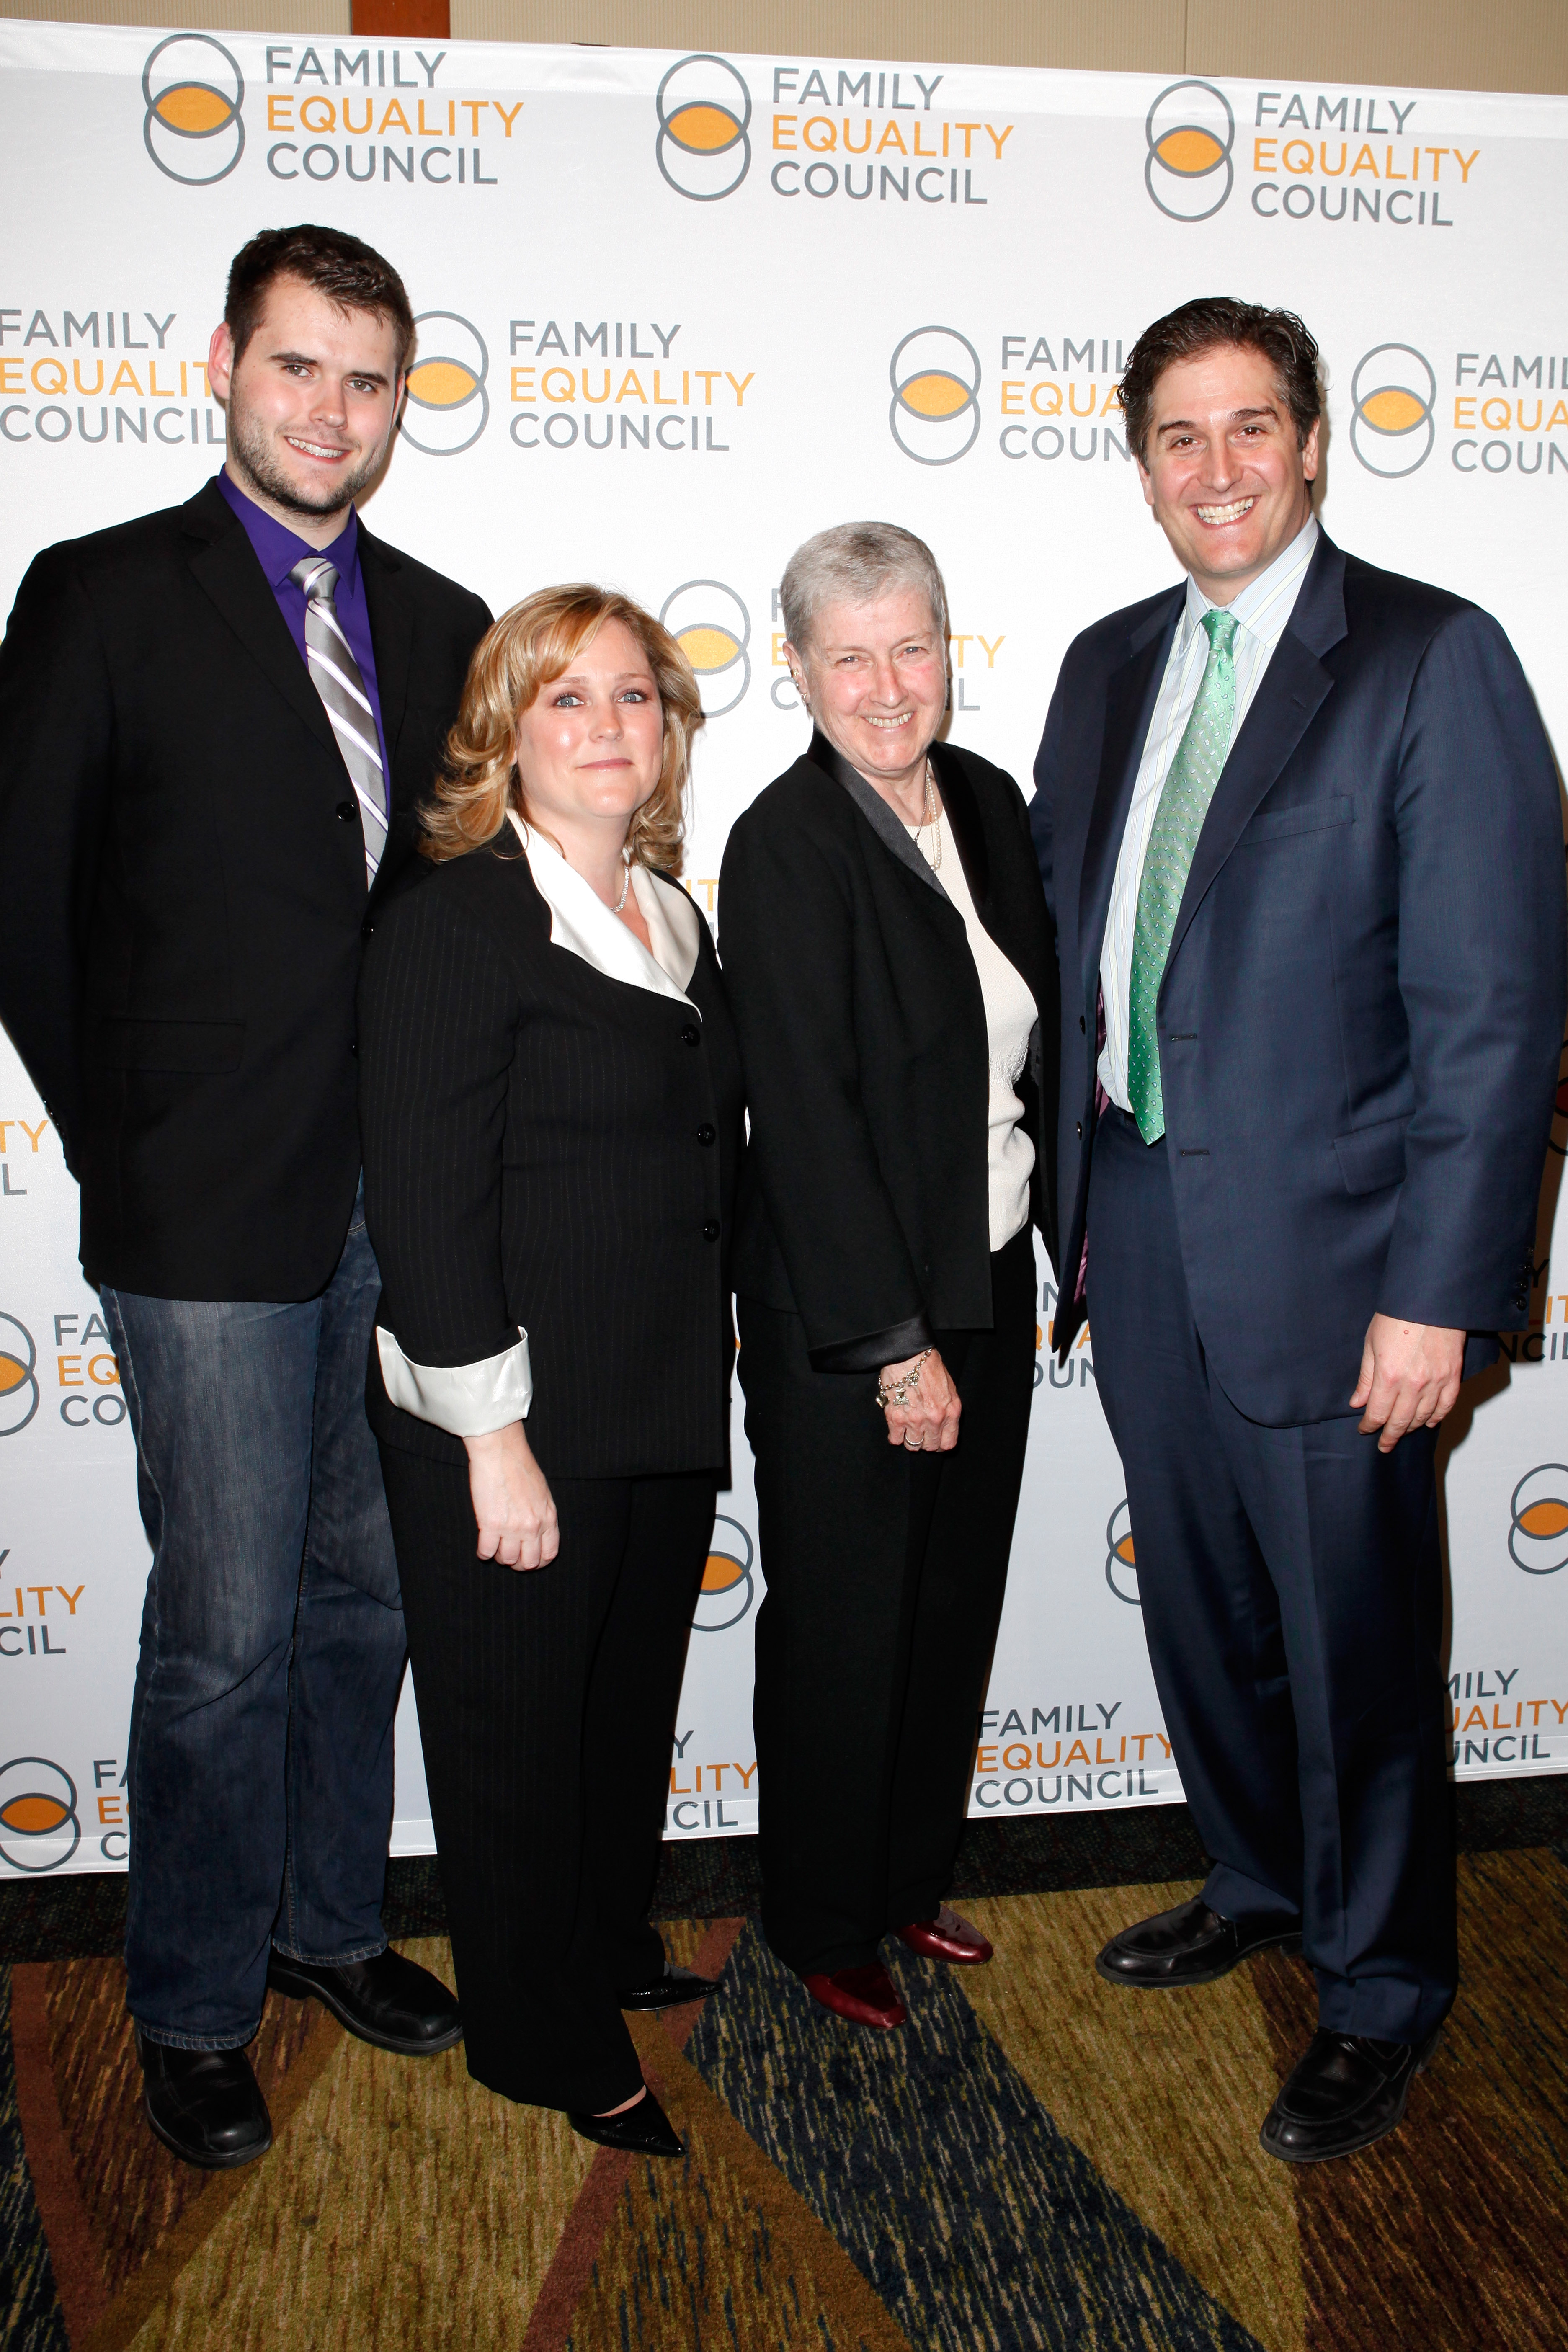 Zach Wahls, Executive director Jennifer Chrisler, Hostetter-Habib Family Award winner Mary T. Keane, and Event chair Nick Scandalios attend the Family Equality Concil's Night at Pier 60 on April 25, 2011 in New York City.  (Photo by Cindy Ord/Getty Images)